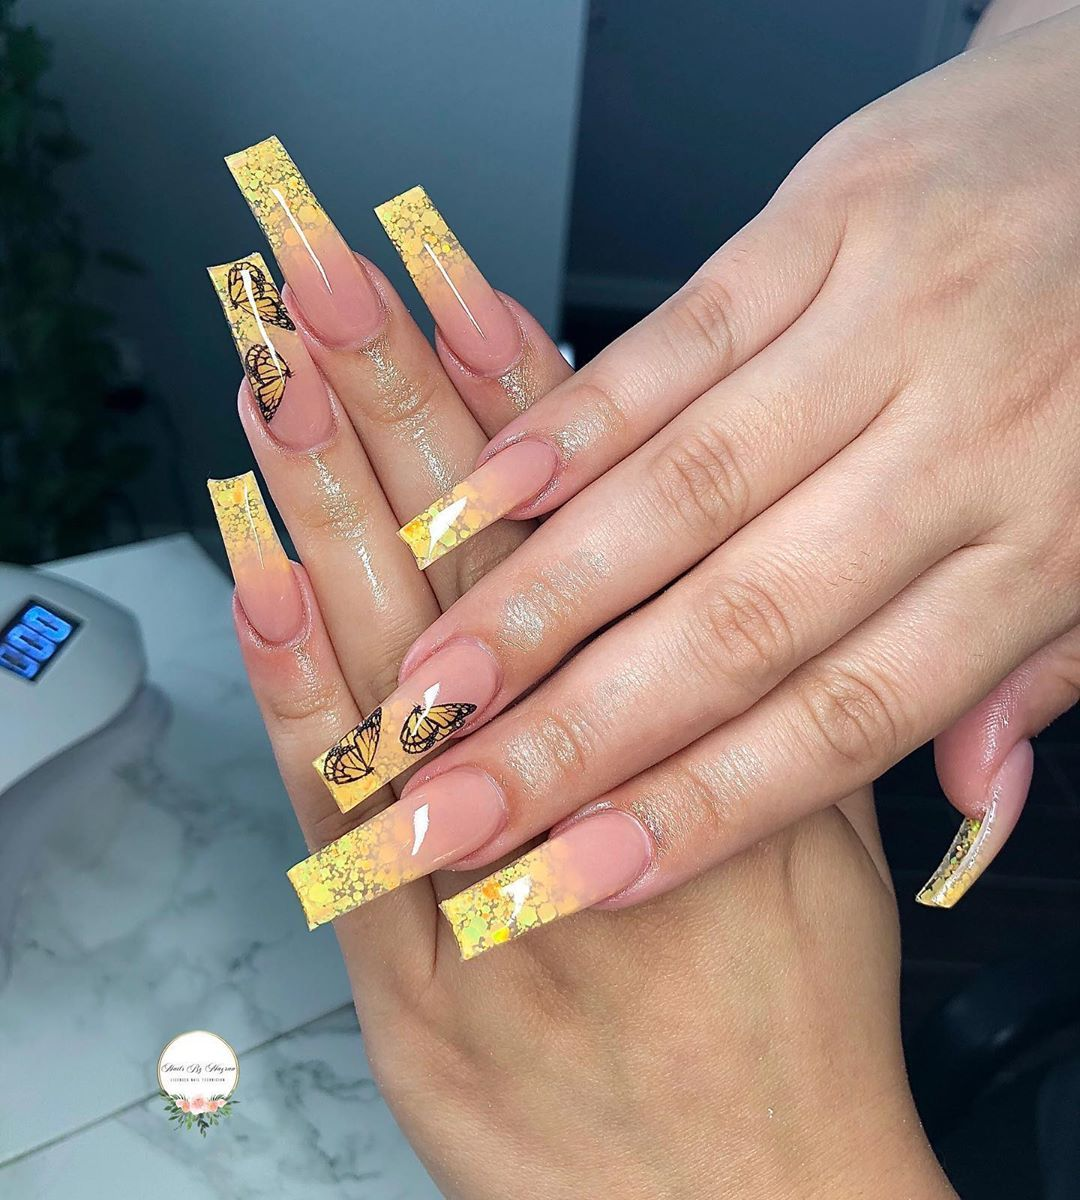 "Licensed Nail Tech🇲🇽 21💖 on Instagram: ""Sweet like honey 🍯🍯💛 Butteries & glitter (summer pack) from @secret.nail.affair use code MAYRA10 at checkout 😉  . . .…"""